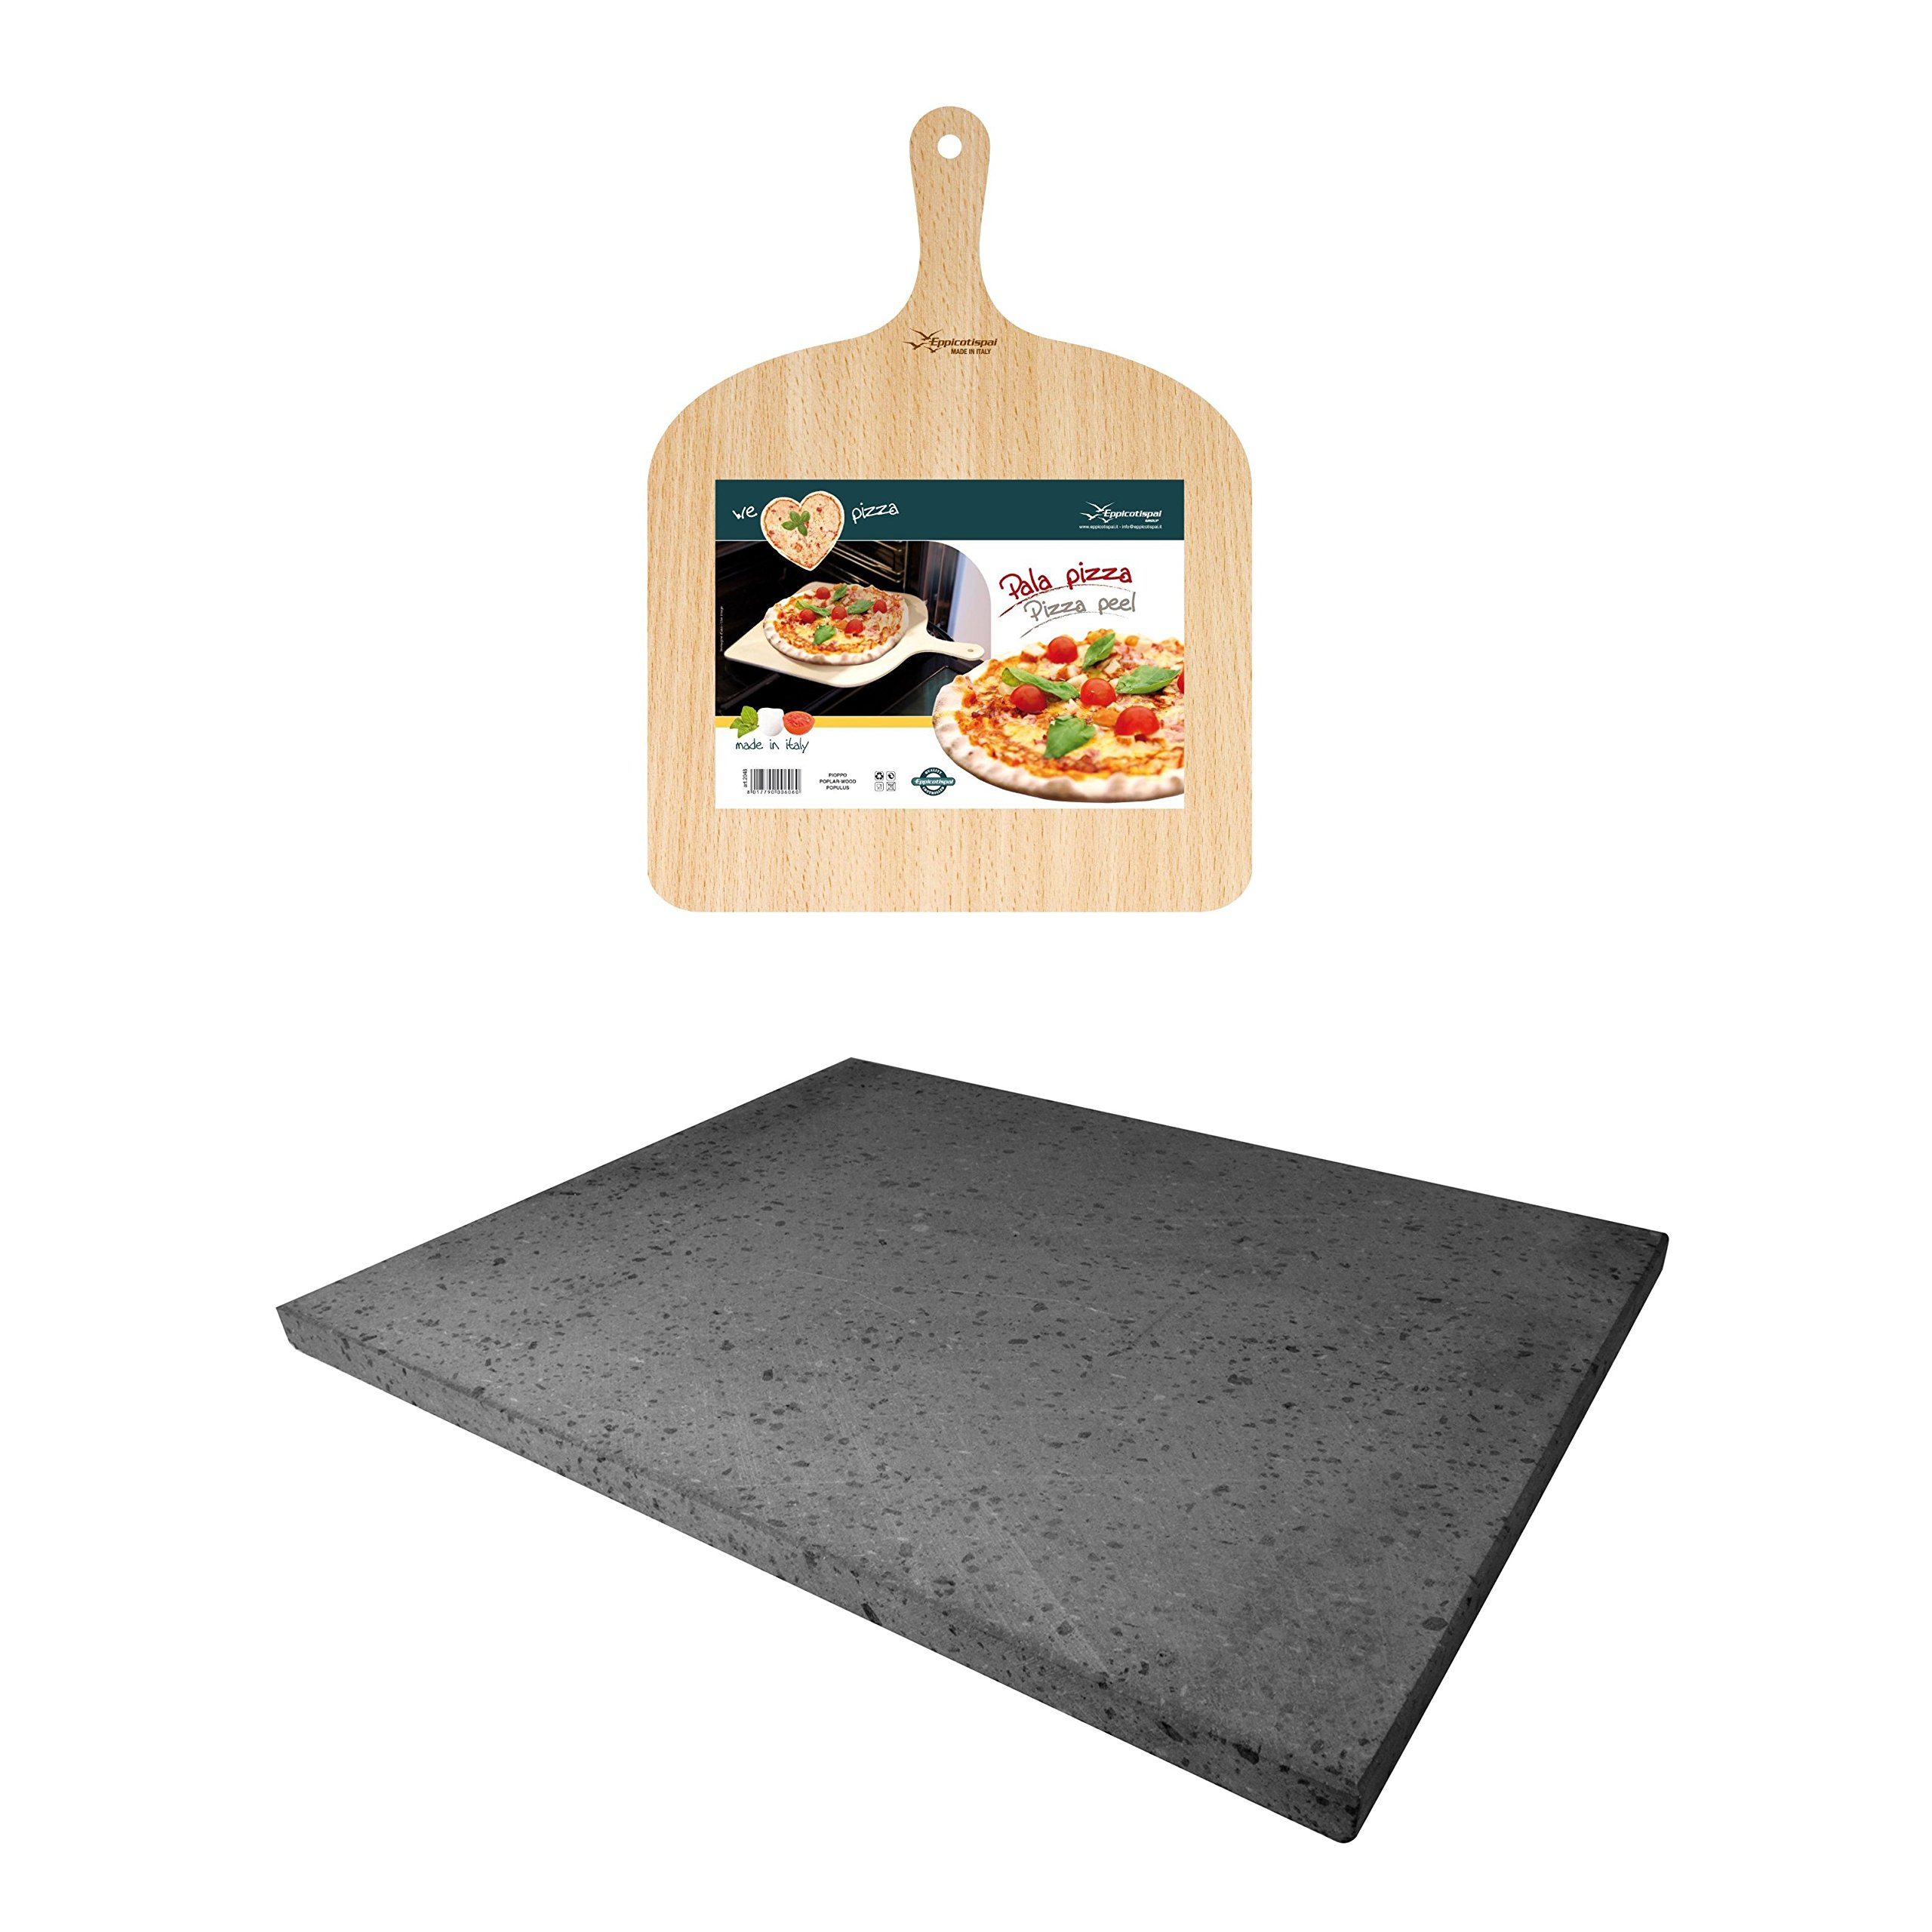 Eppicotispai Pizza Set with Cooking Stone and Pizza Peel, Silver by Eppicotispai